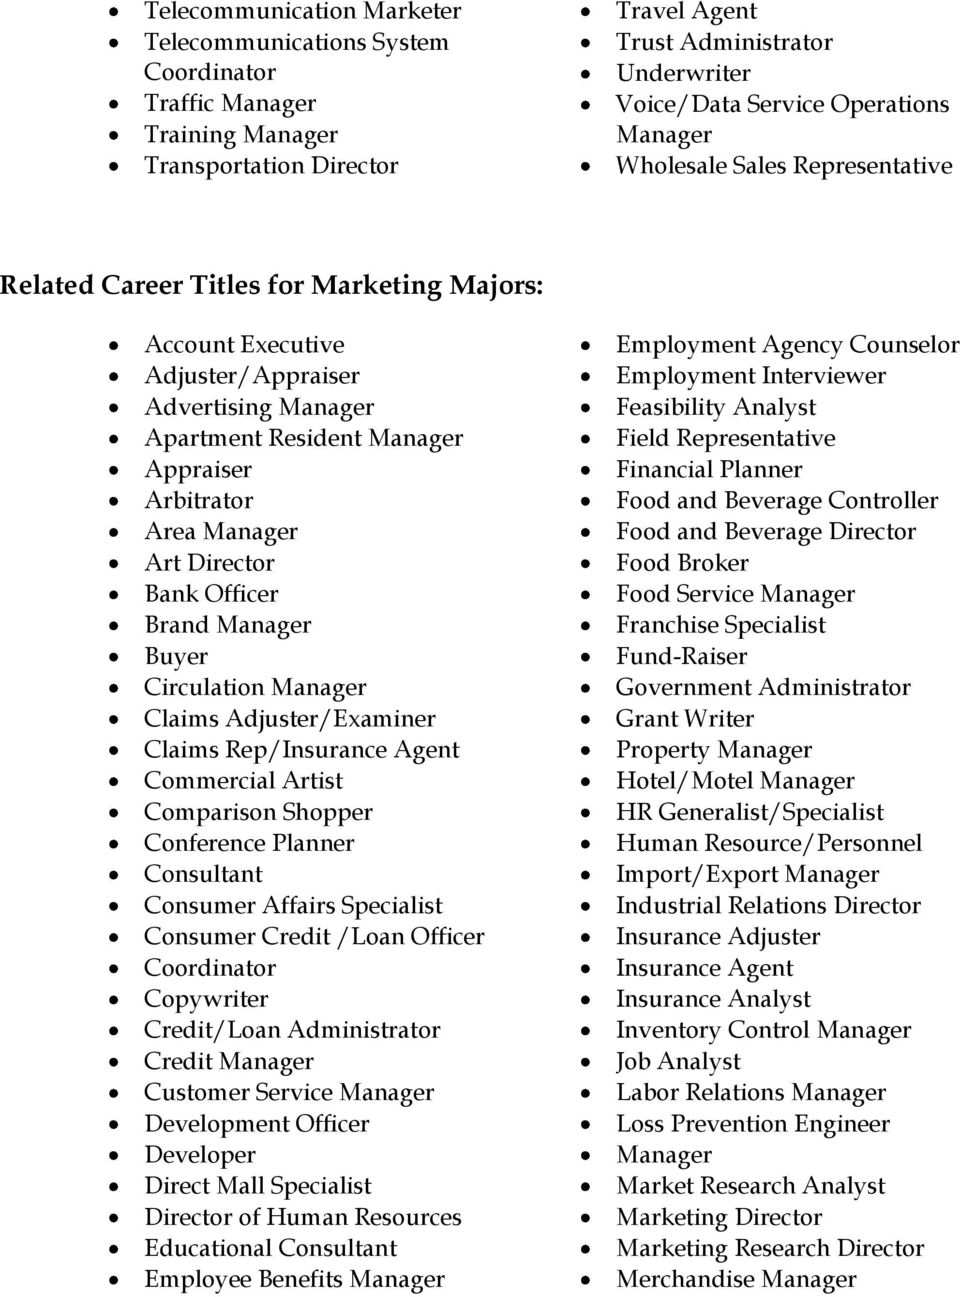 Manager Art Director Bank Officer Brand Manager Buyer Circulation Manager Claims Adjuster/Examiner Claims Rep/Insurance Agent Commercial Artist Comparison Shopper Conference Planner Consultant